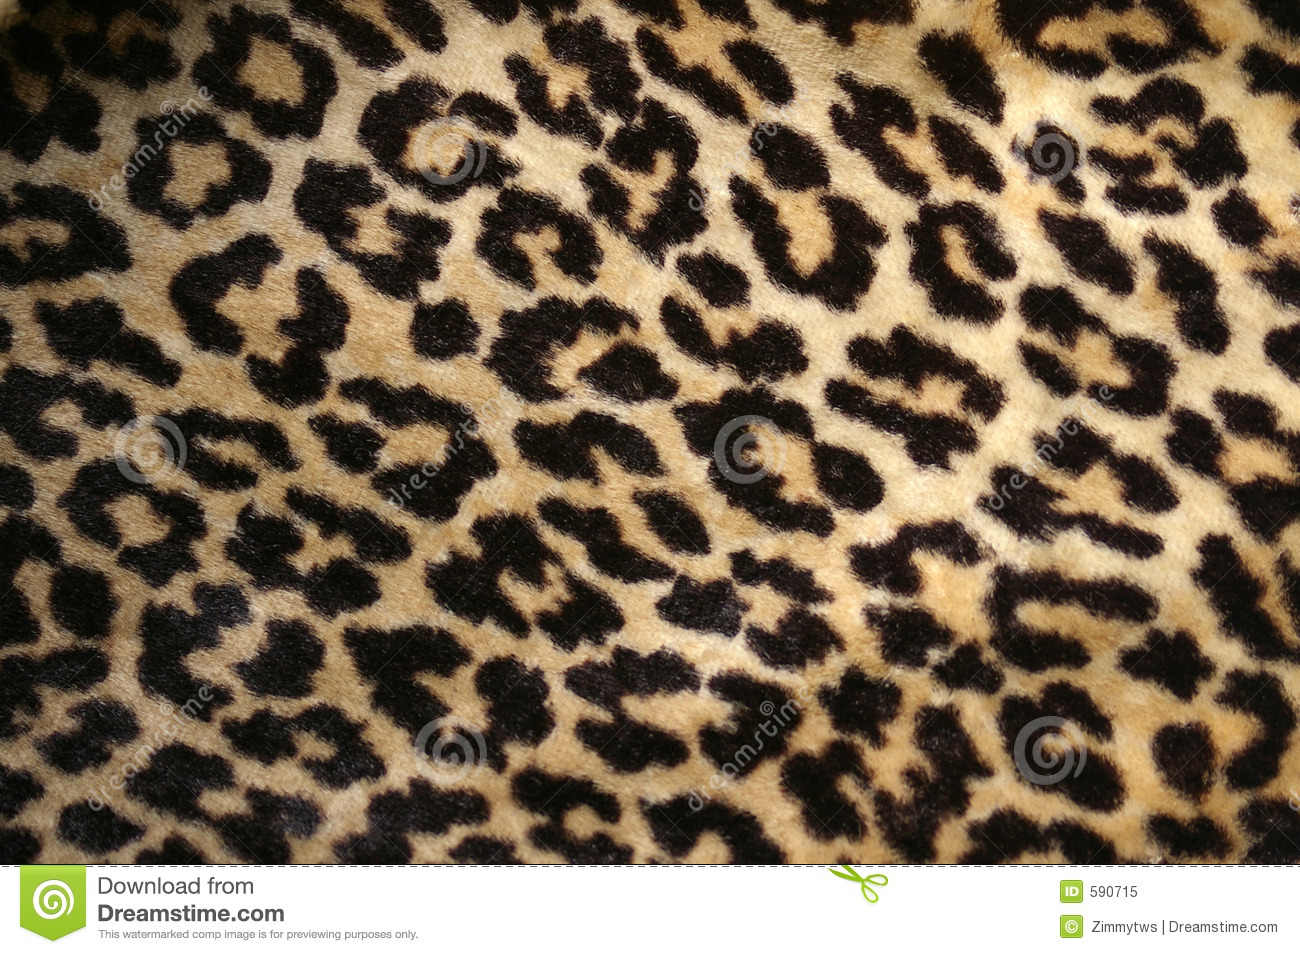 Leopard print & Leopard print stock image. Image of print fabric animal - 590715